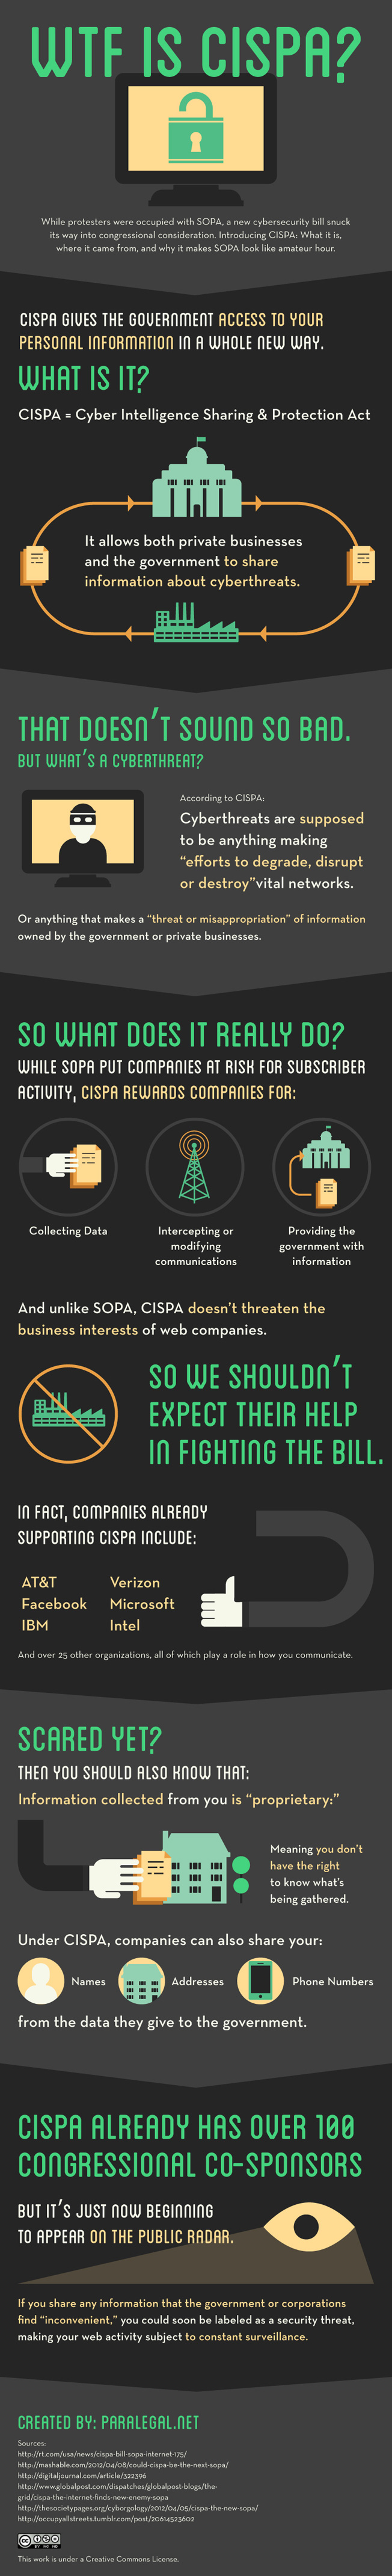 WTF is CISPA Infographic